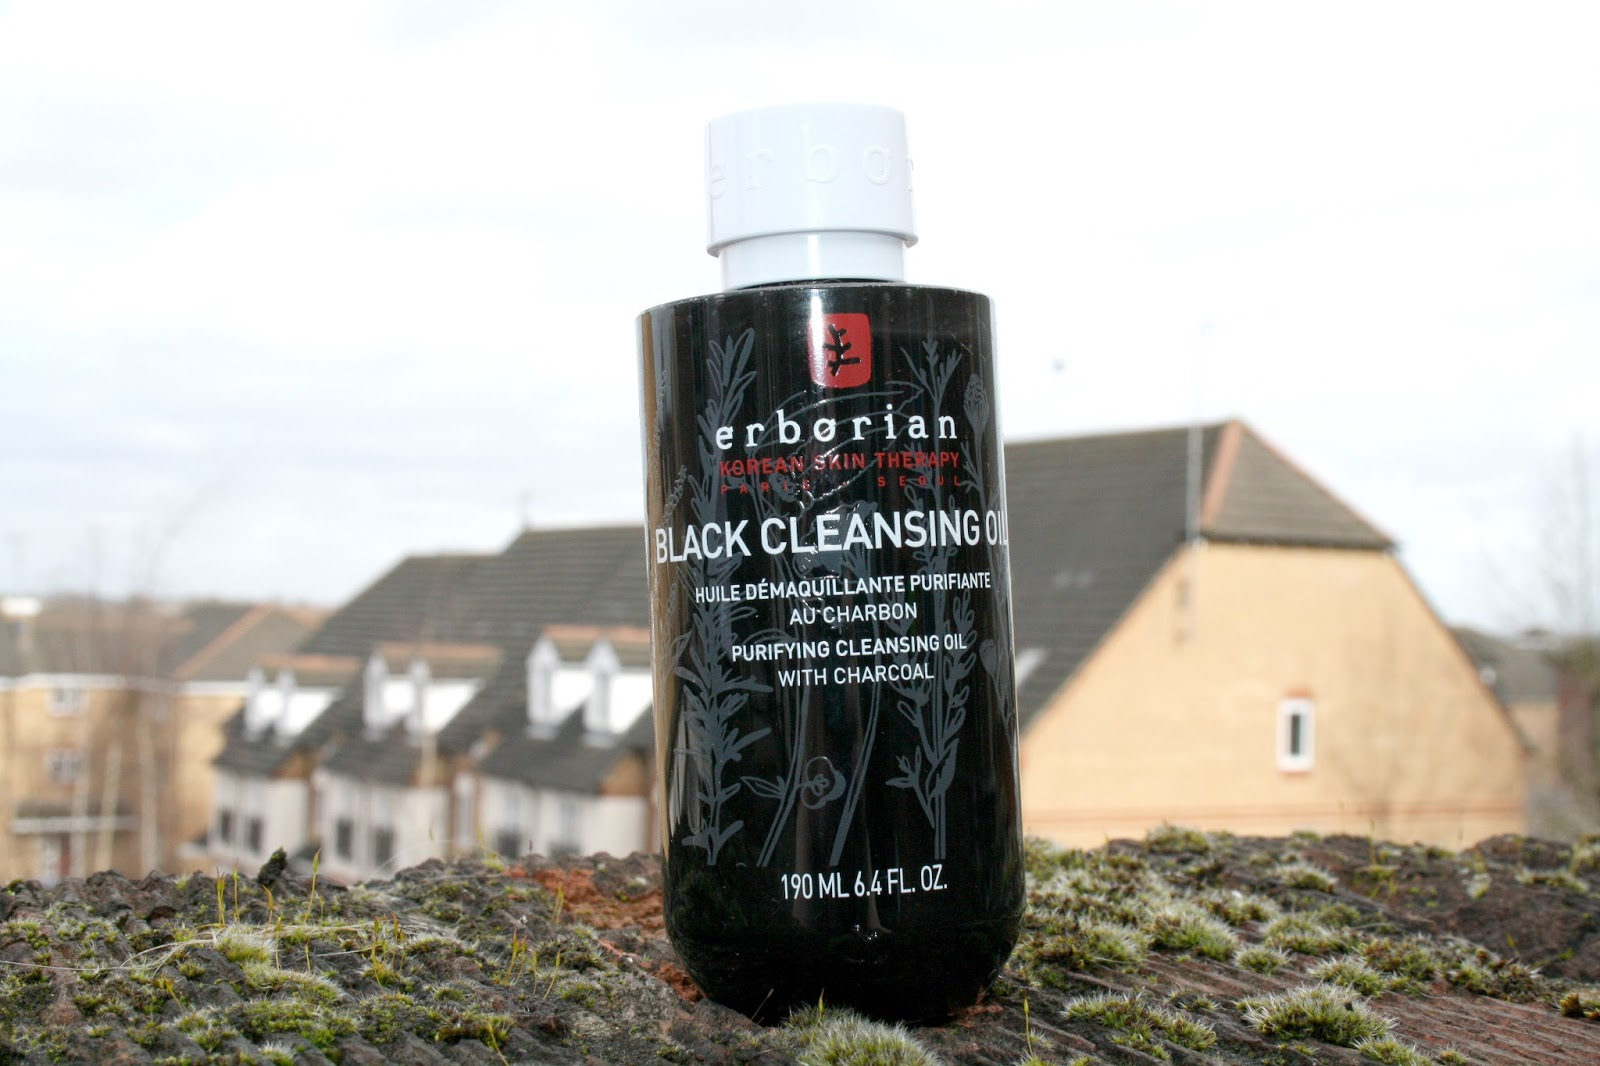 Erborian Black Cleansing Oil Beauty Queen Uk Bloglovin Humphrey Skin Care Activated Charcoal Bodywash 500ml Blending The Power Of Korean Textures And Ingredients With French Sensoriality Know How There Is A Whole Host New Products Hitting Stores I Have